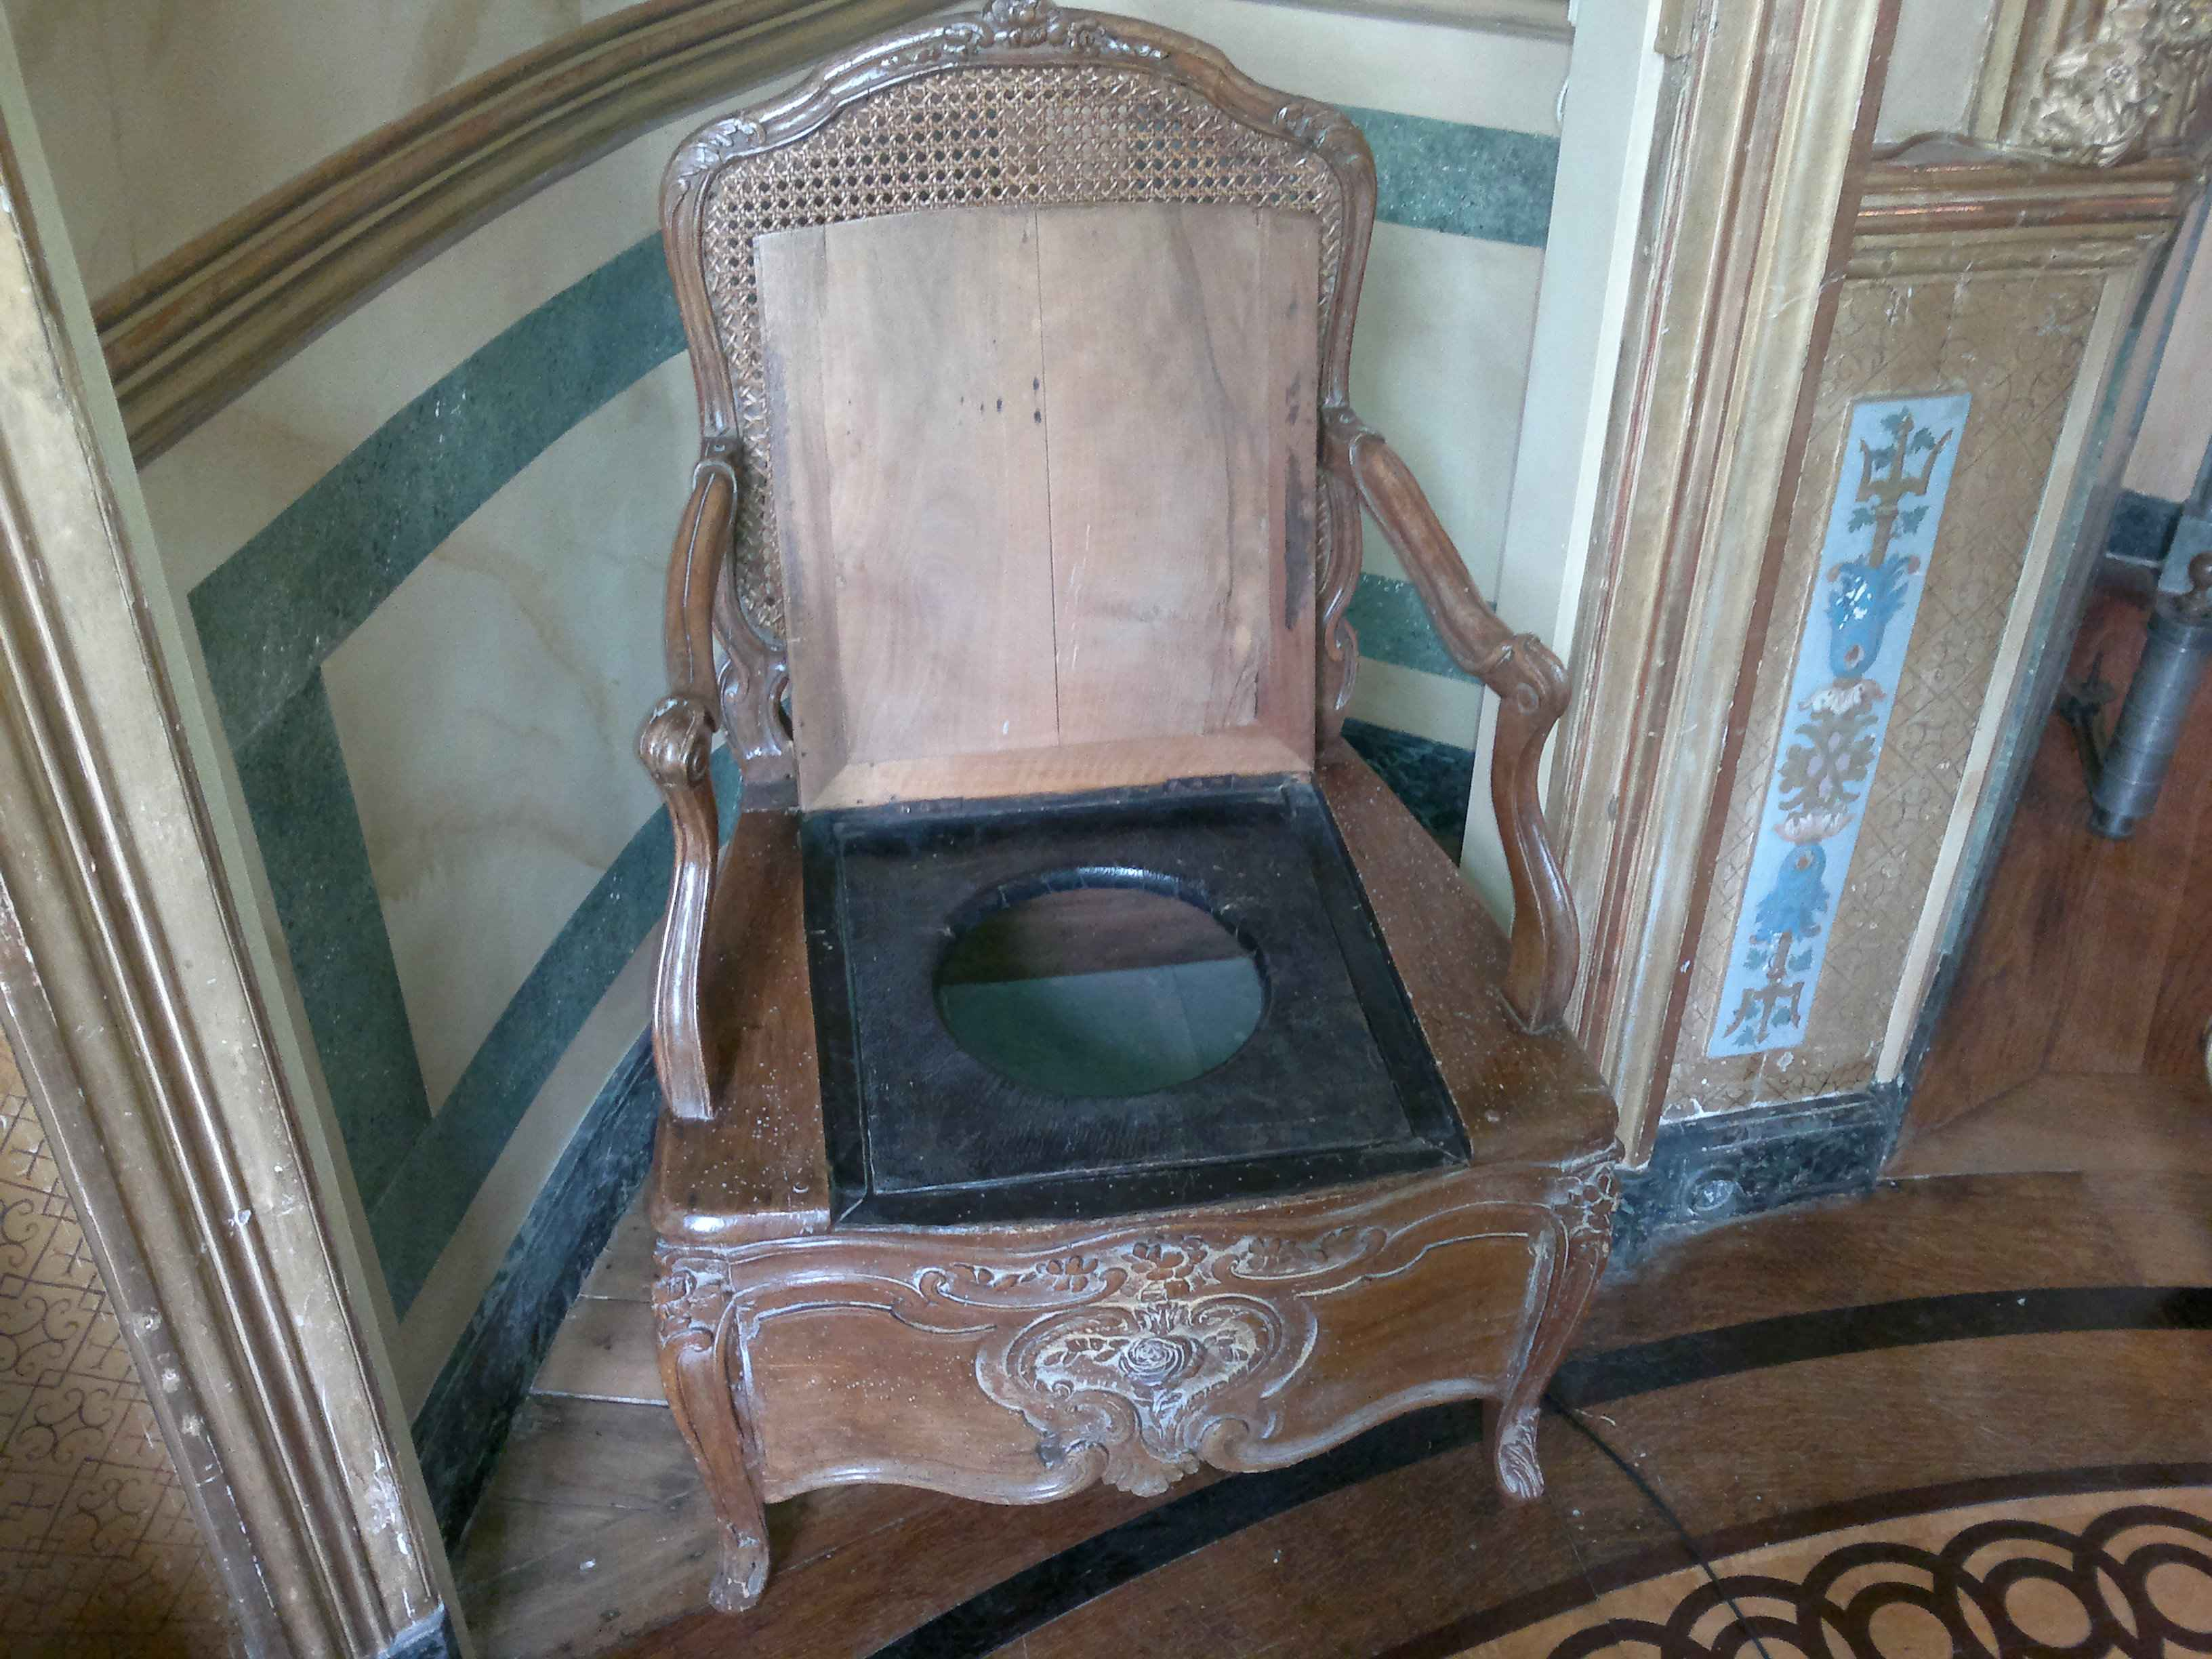 File:Vaux le Vicomte bathroom chair.jpg - Wikimedia Commons